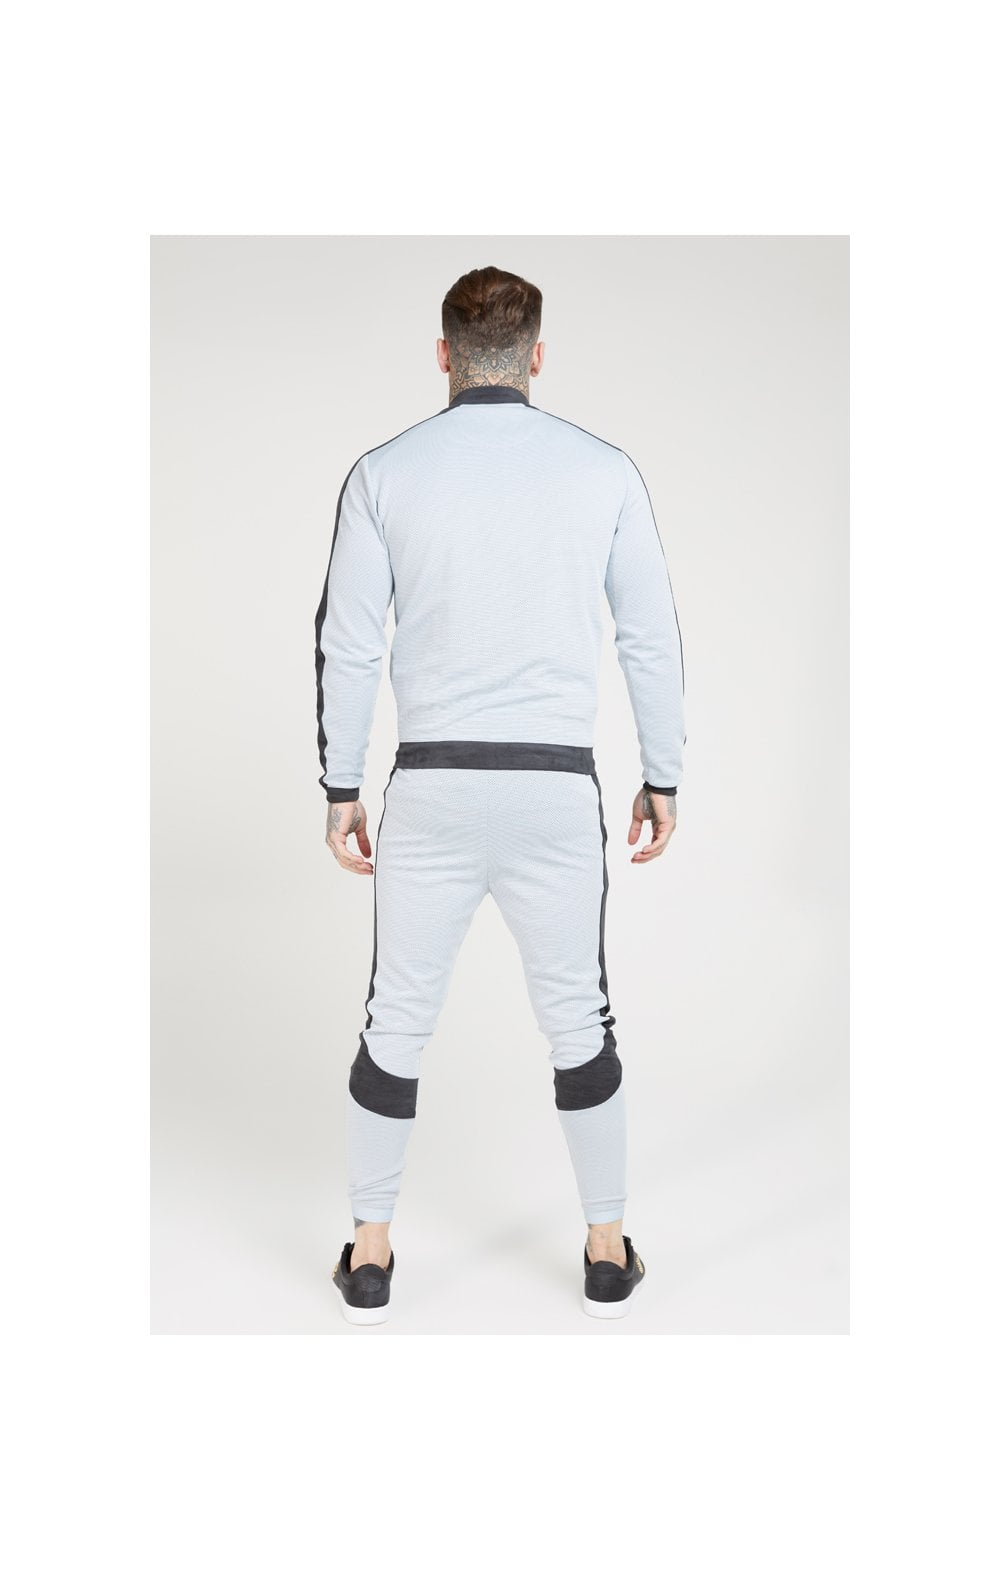 SikSilk Eyelet Poly Tape Bomber Jacket – Ice Grey & Charcoal (4)